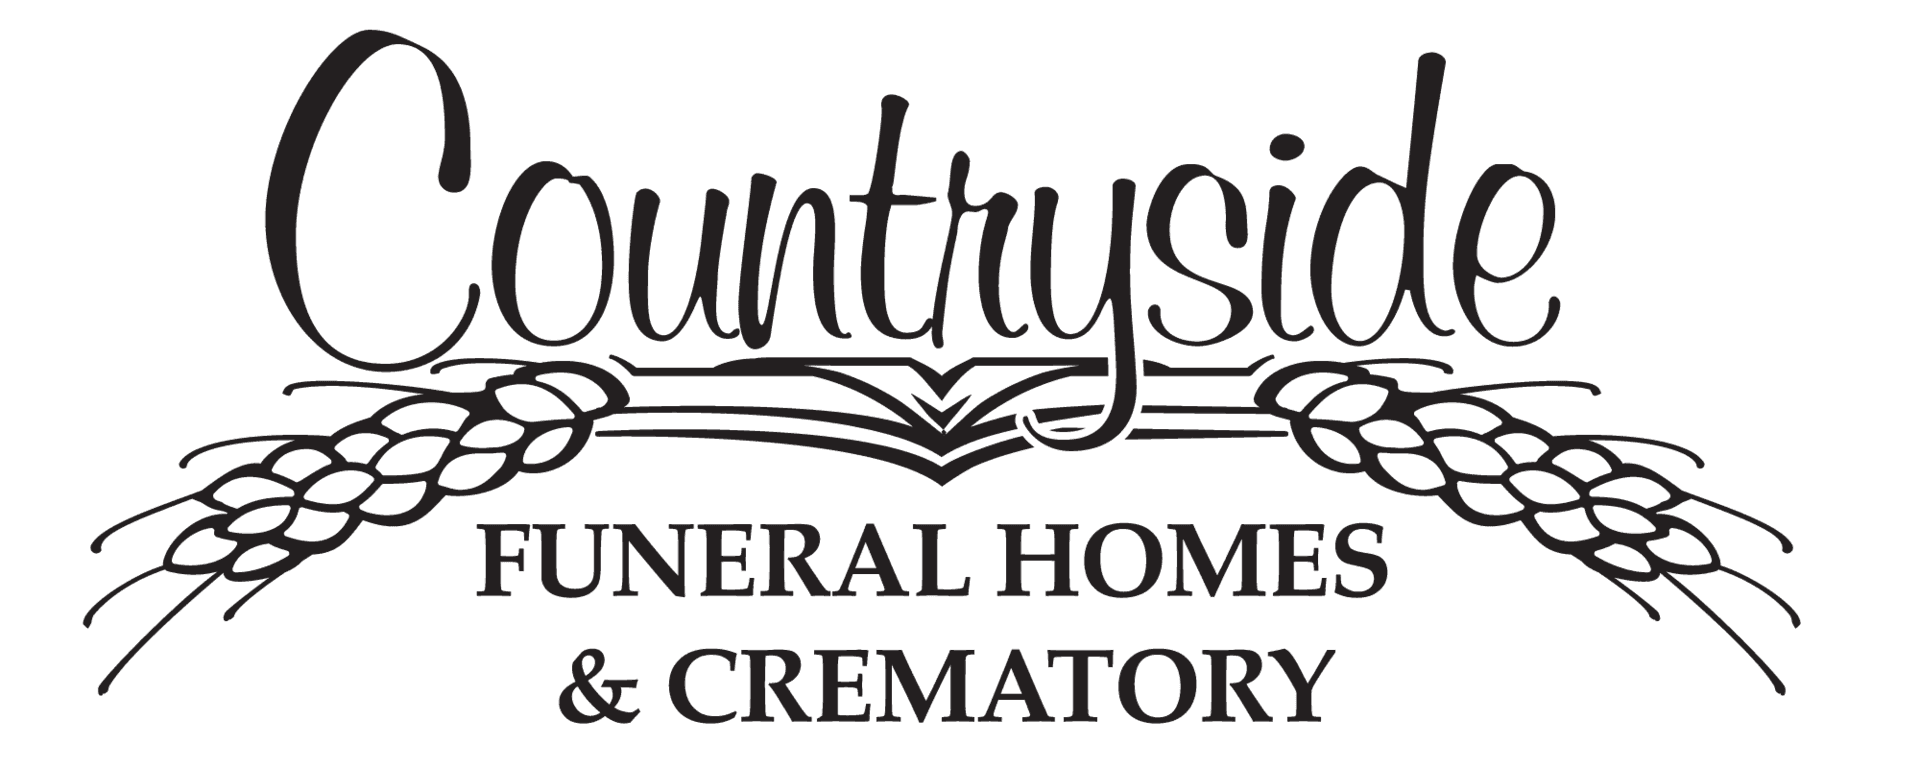 Countryside Funeral Home & Crematory